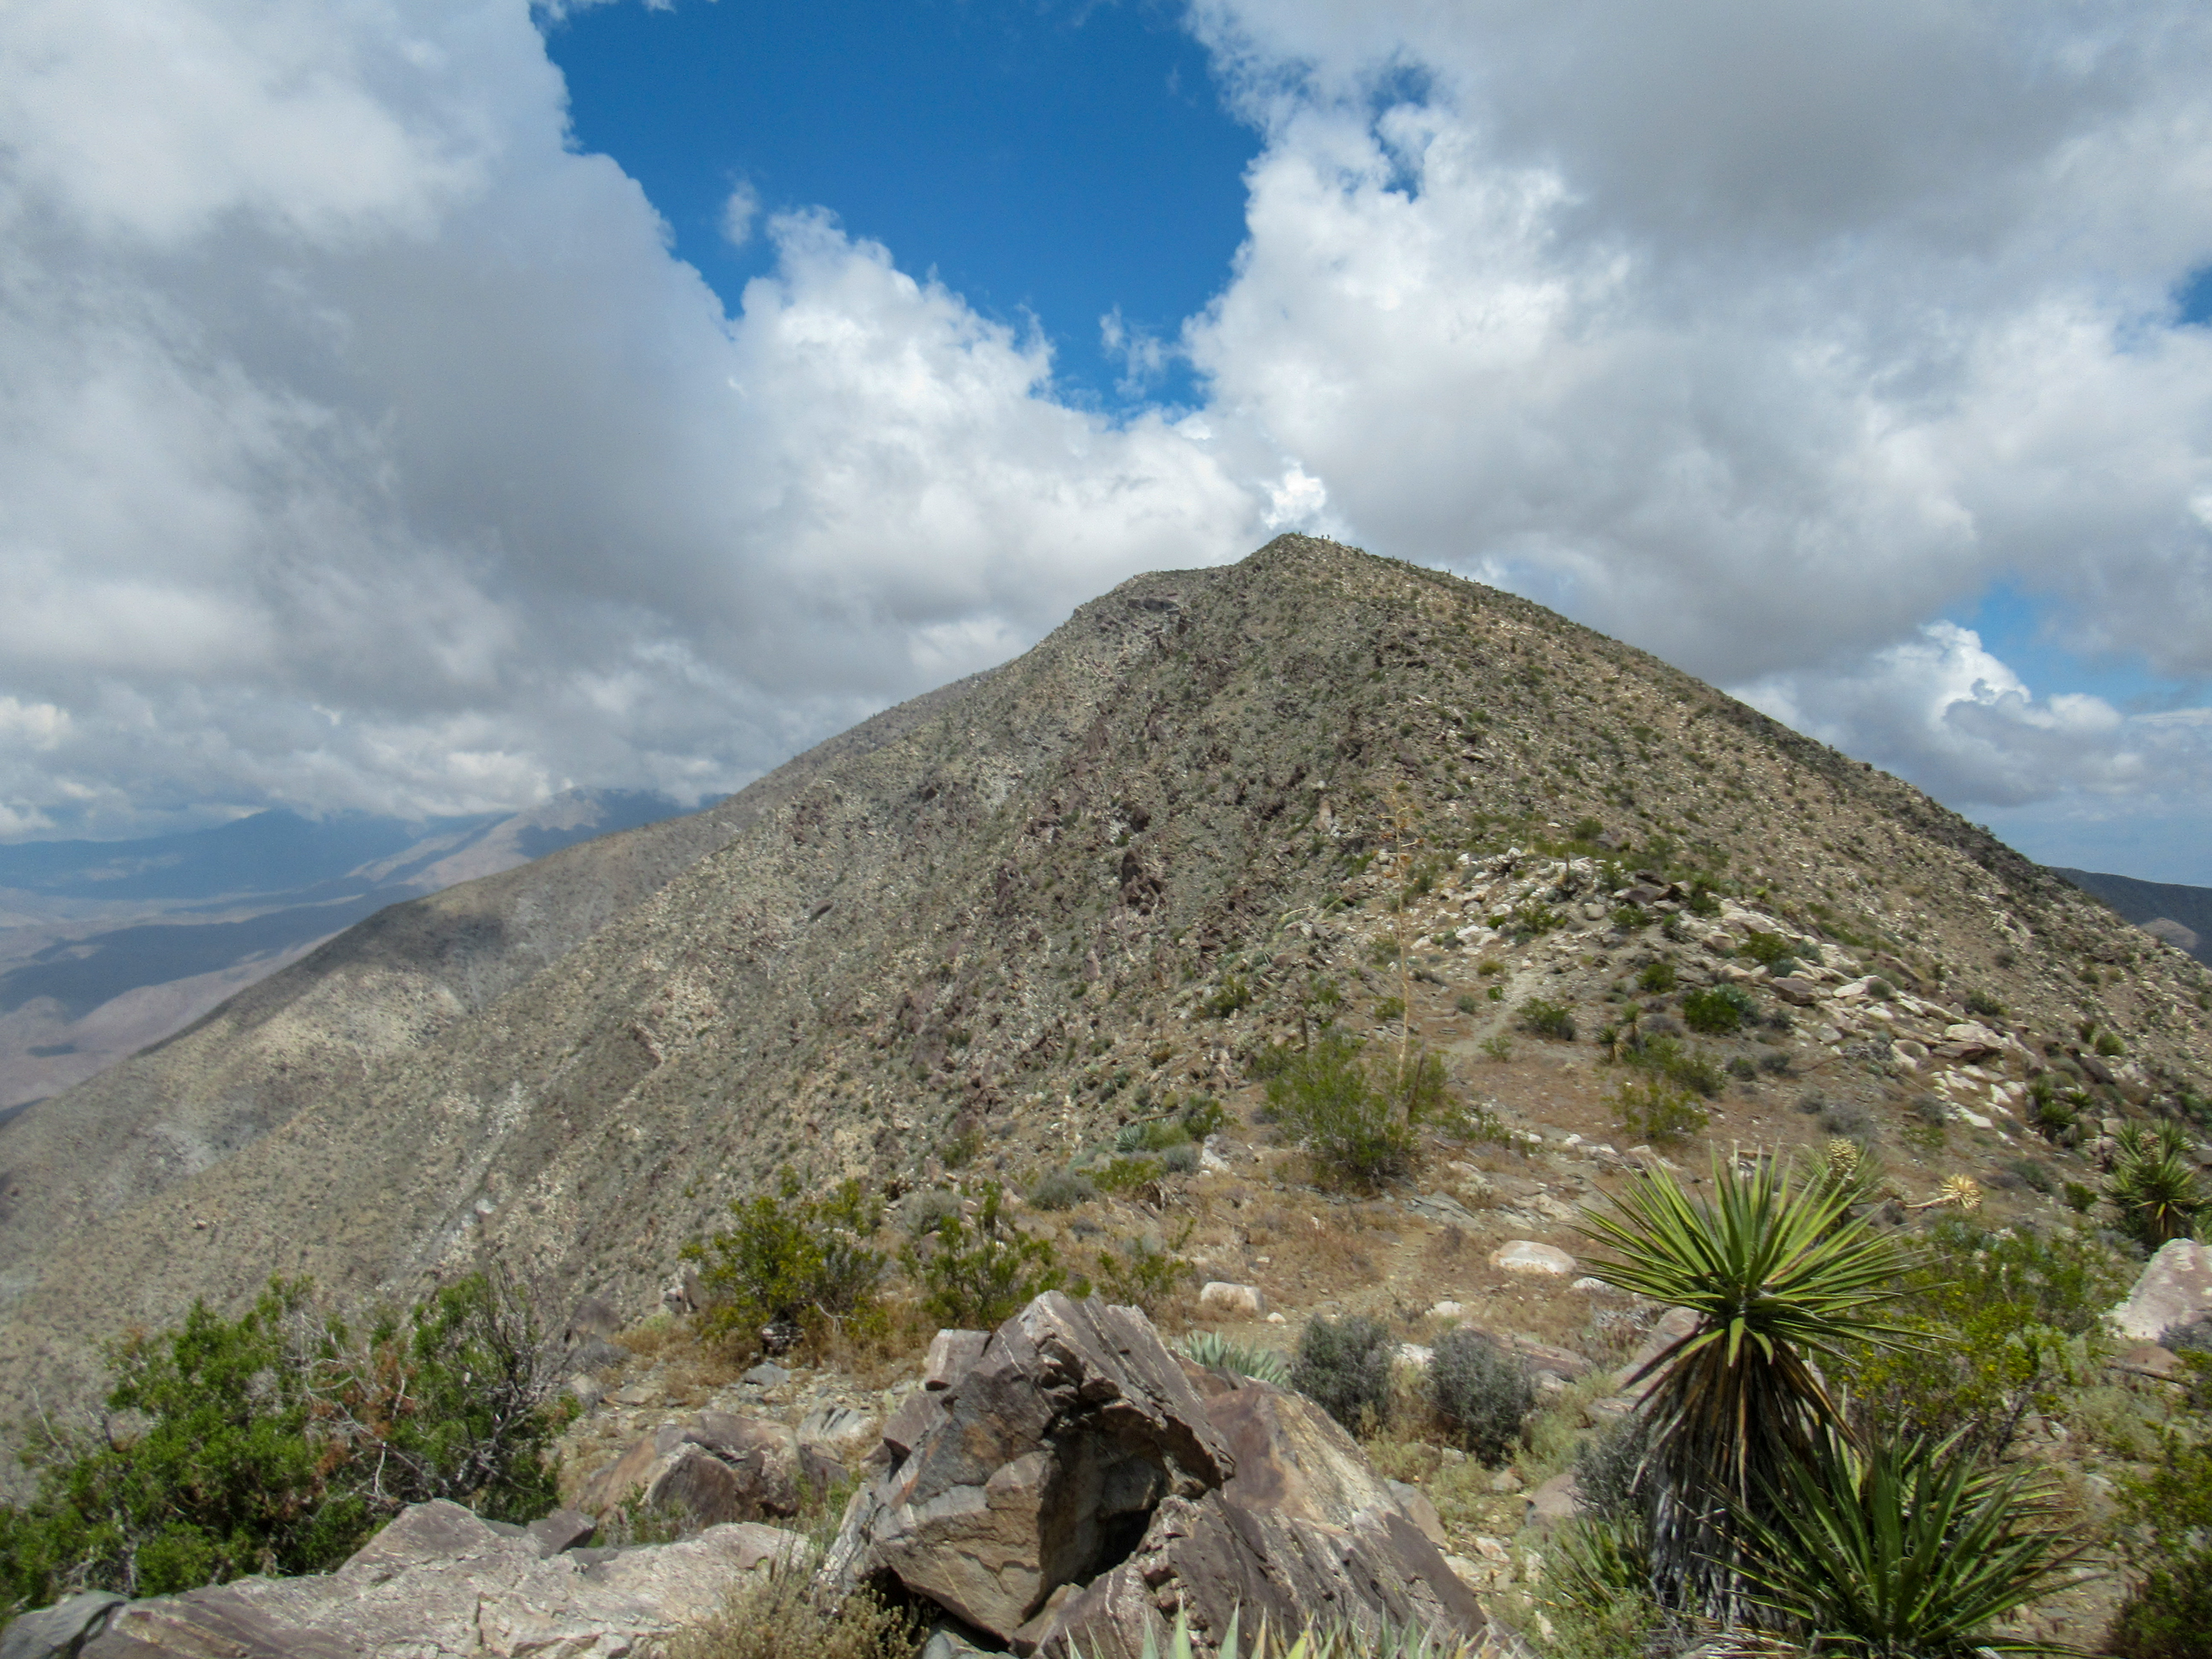 Villager Peak in Anza Borrego.